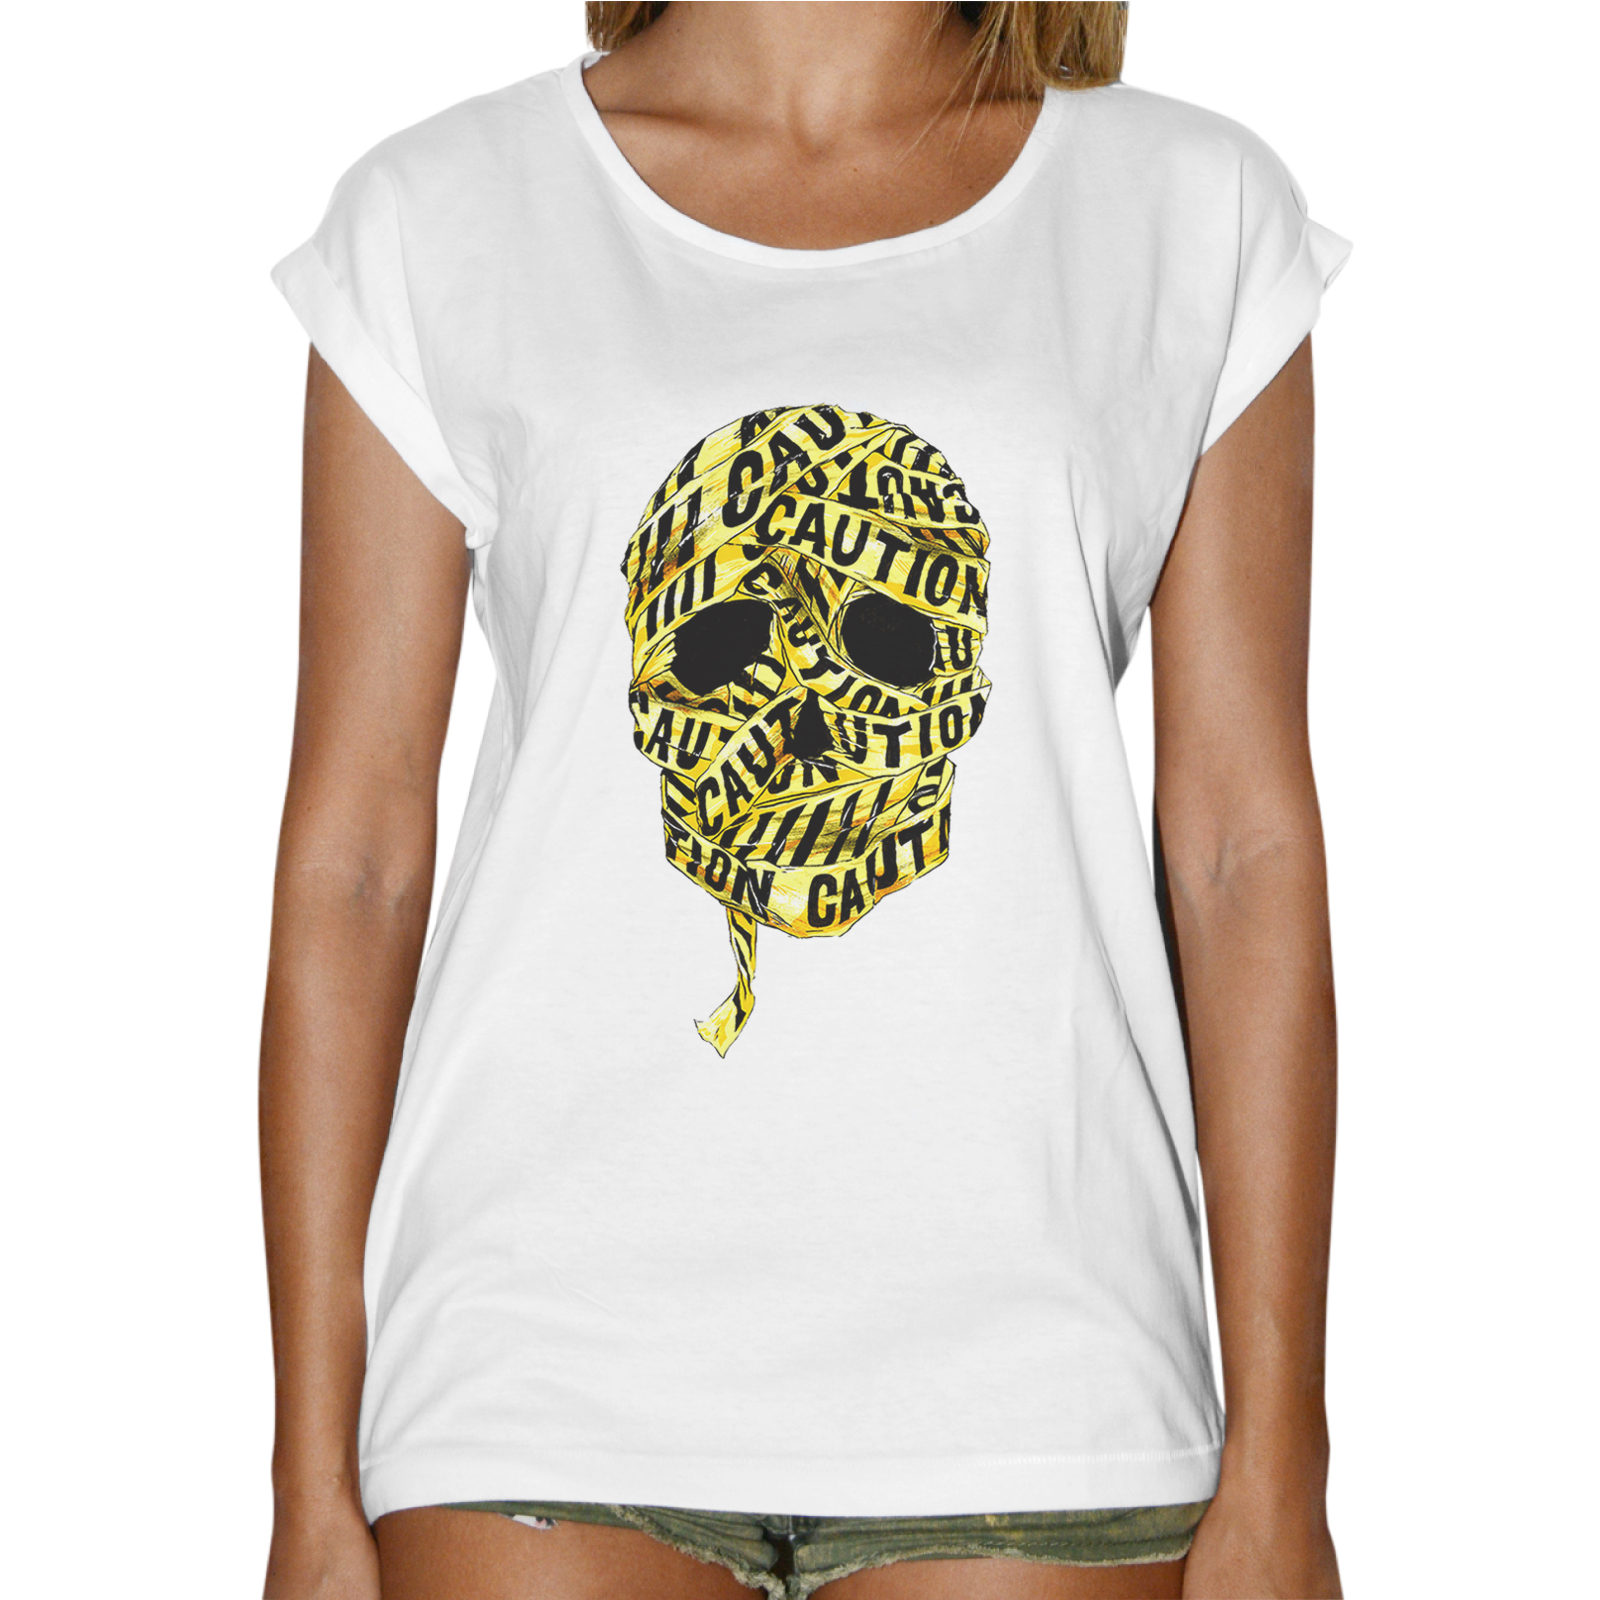 T-Shirt Donna Fashion SKULL CAUTION